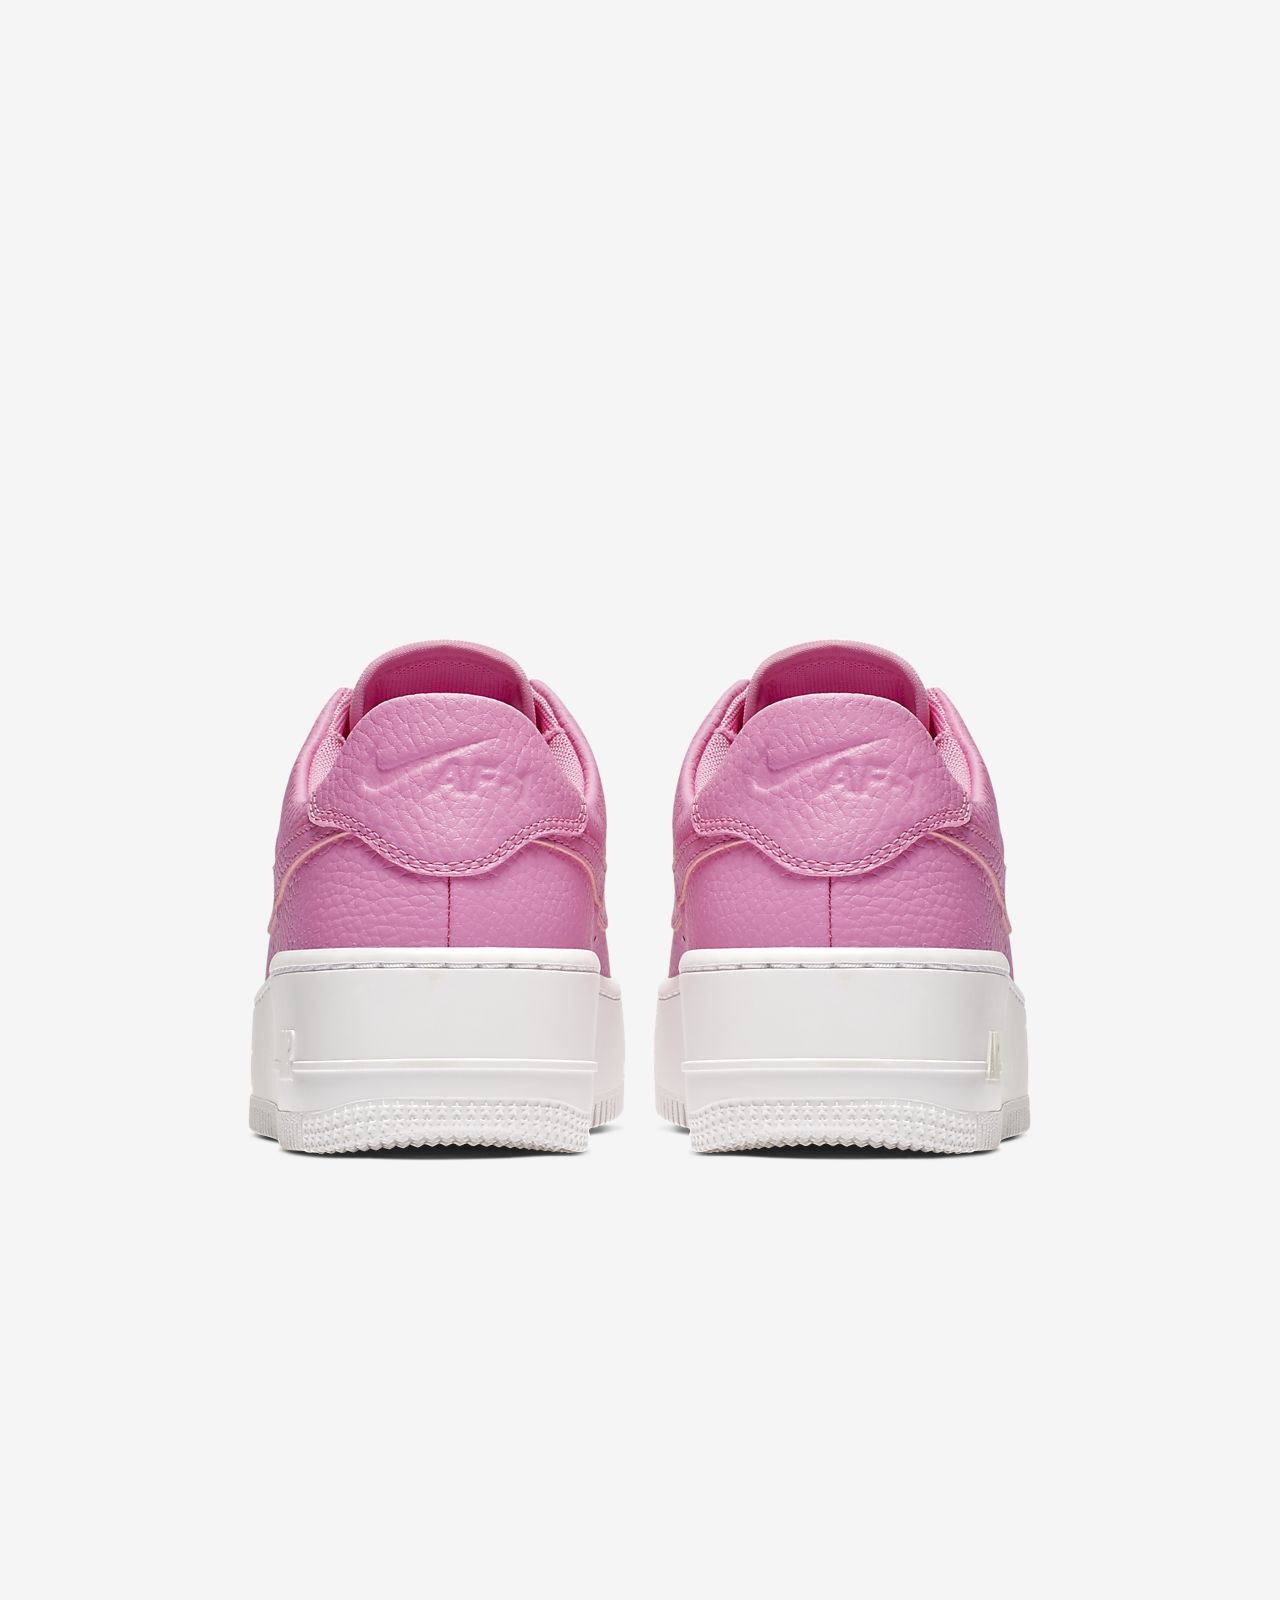 1 Air Pour Nike Sage FemmeBe Low Force Chaussure Z0NnX8wOkP